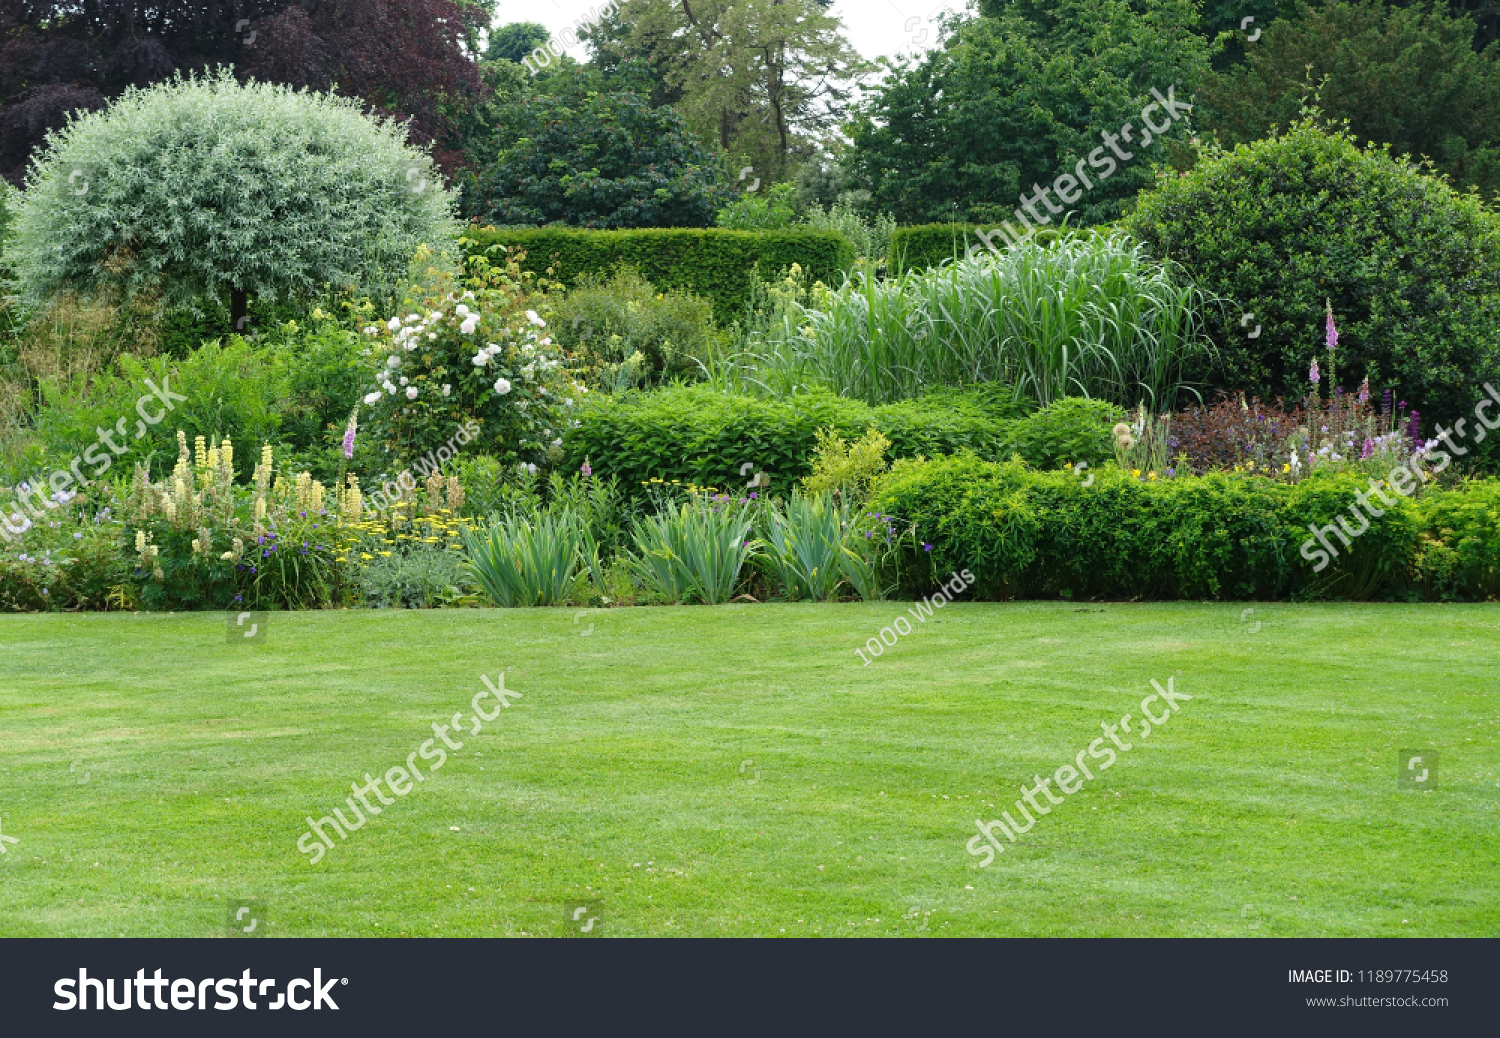 Scenic View of a Beautiful English Style Landscape Garden with a Green Mowed Lawn and Colourful Flower Bed